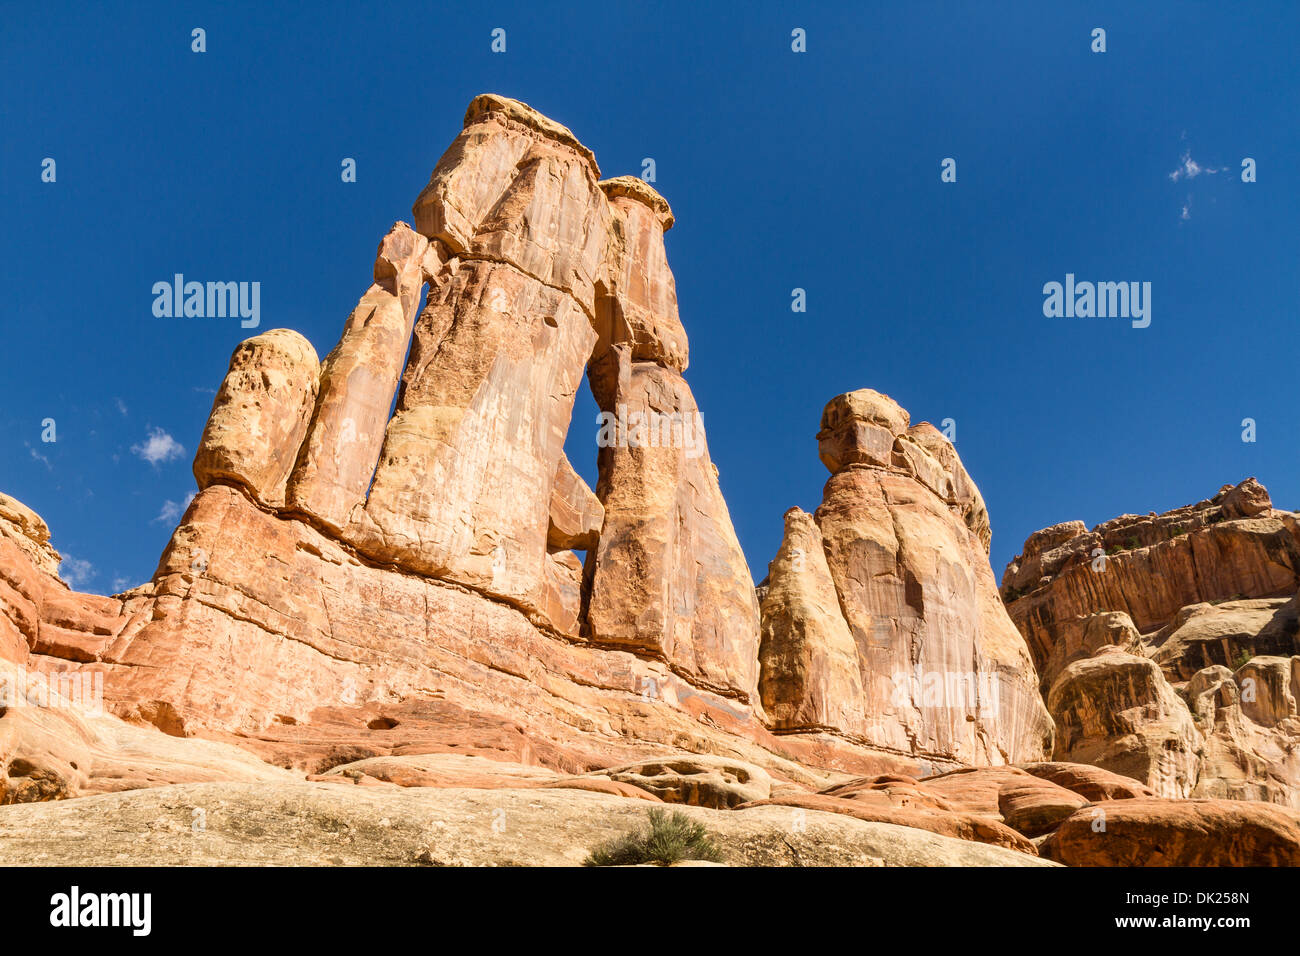 Iconic Druid Arch in Elephant Canyon seen from the west side in the Needles District of Canyonlands National Park, Utah - Stock Image